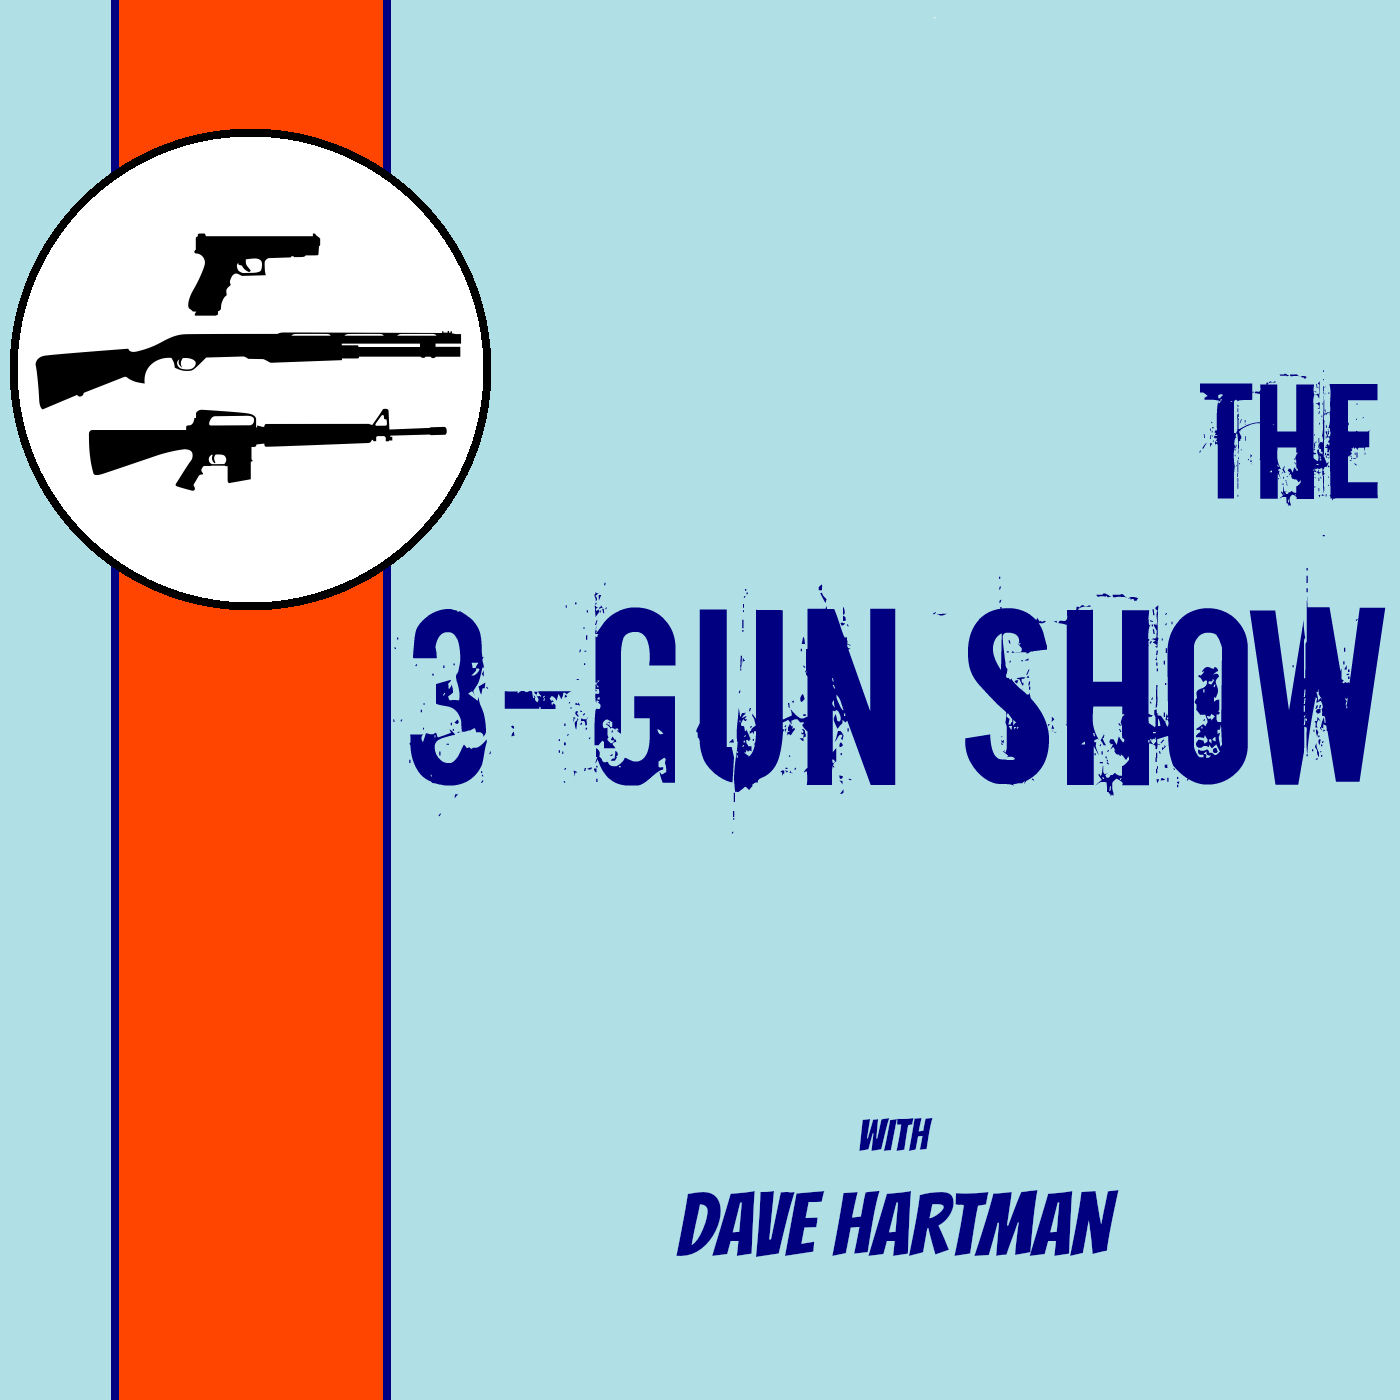 The 3-Gun Show |A weekly podcast featuring the best in Multigun such as Jerry Miculek, Keith Garcia, Taran Butler, Greg Jordan, Tommy Thacker, Jesse Tischauser